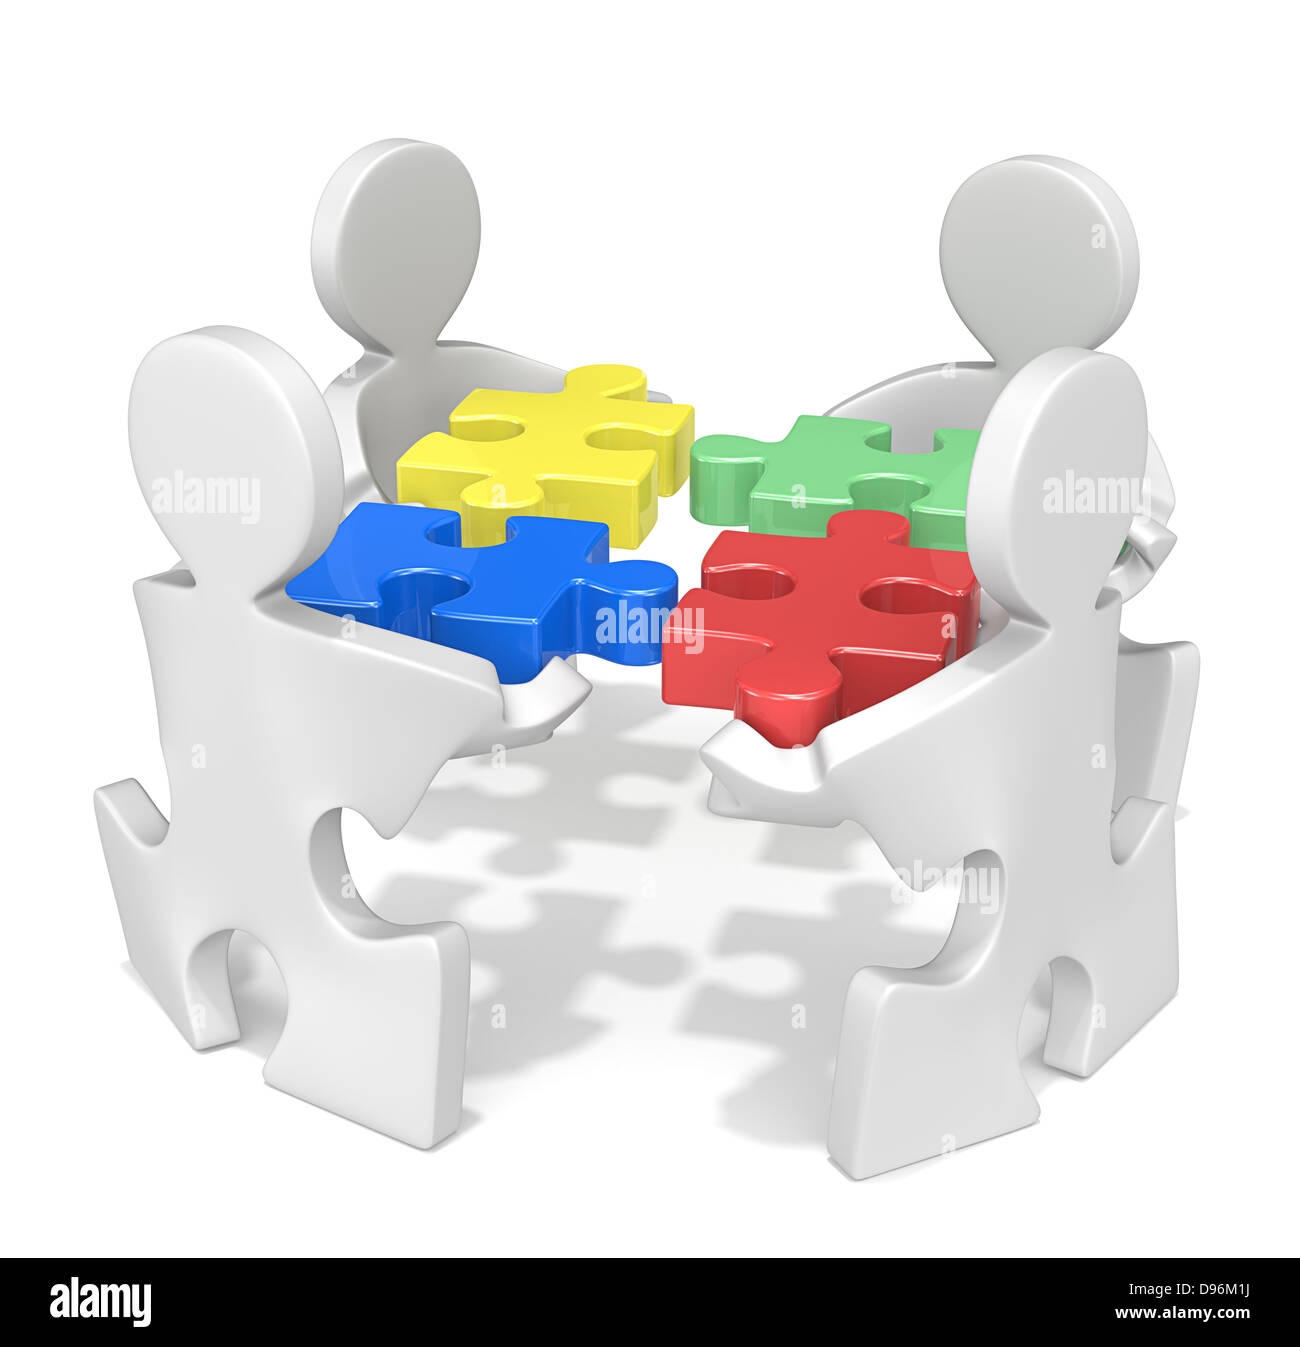 Puzzle People X 4 Holding Puzzle Pieces Red Green Yellow And Blue